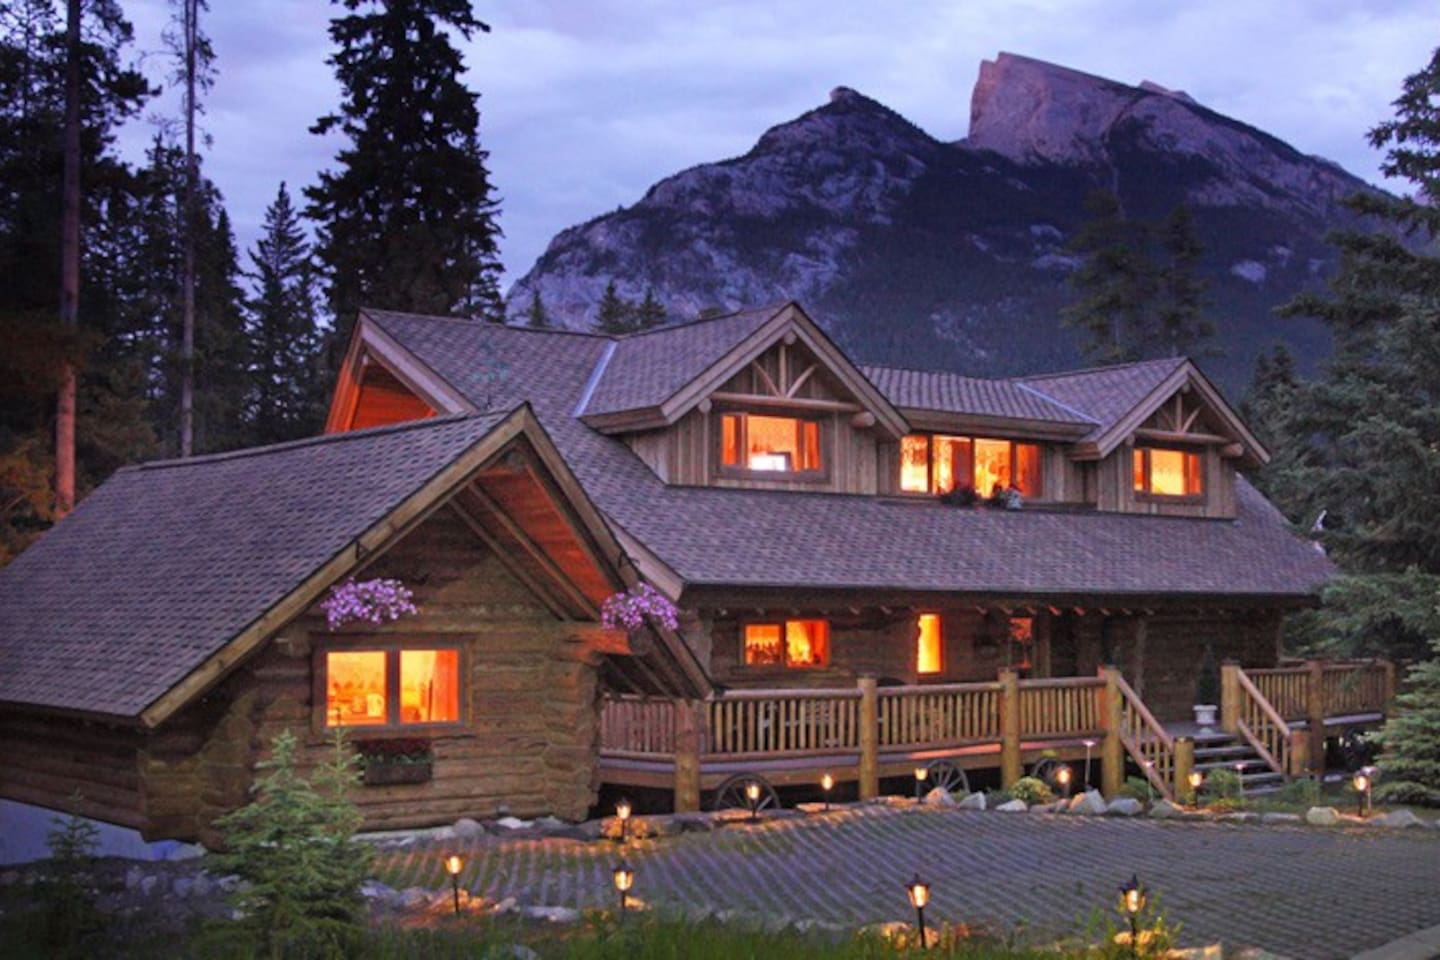 Private log cabin for 2 people max, next to the main house where the owners live.  Located in a beautiful residential area, close and within walking distance of downtown Banff, the Fairmont Banff Springs hotel and the Bow Falls.